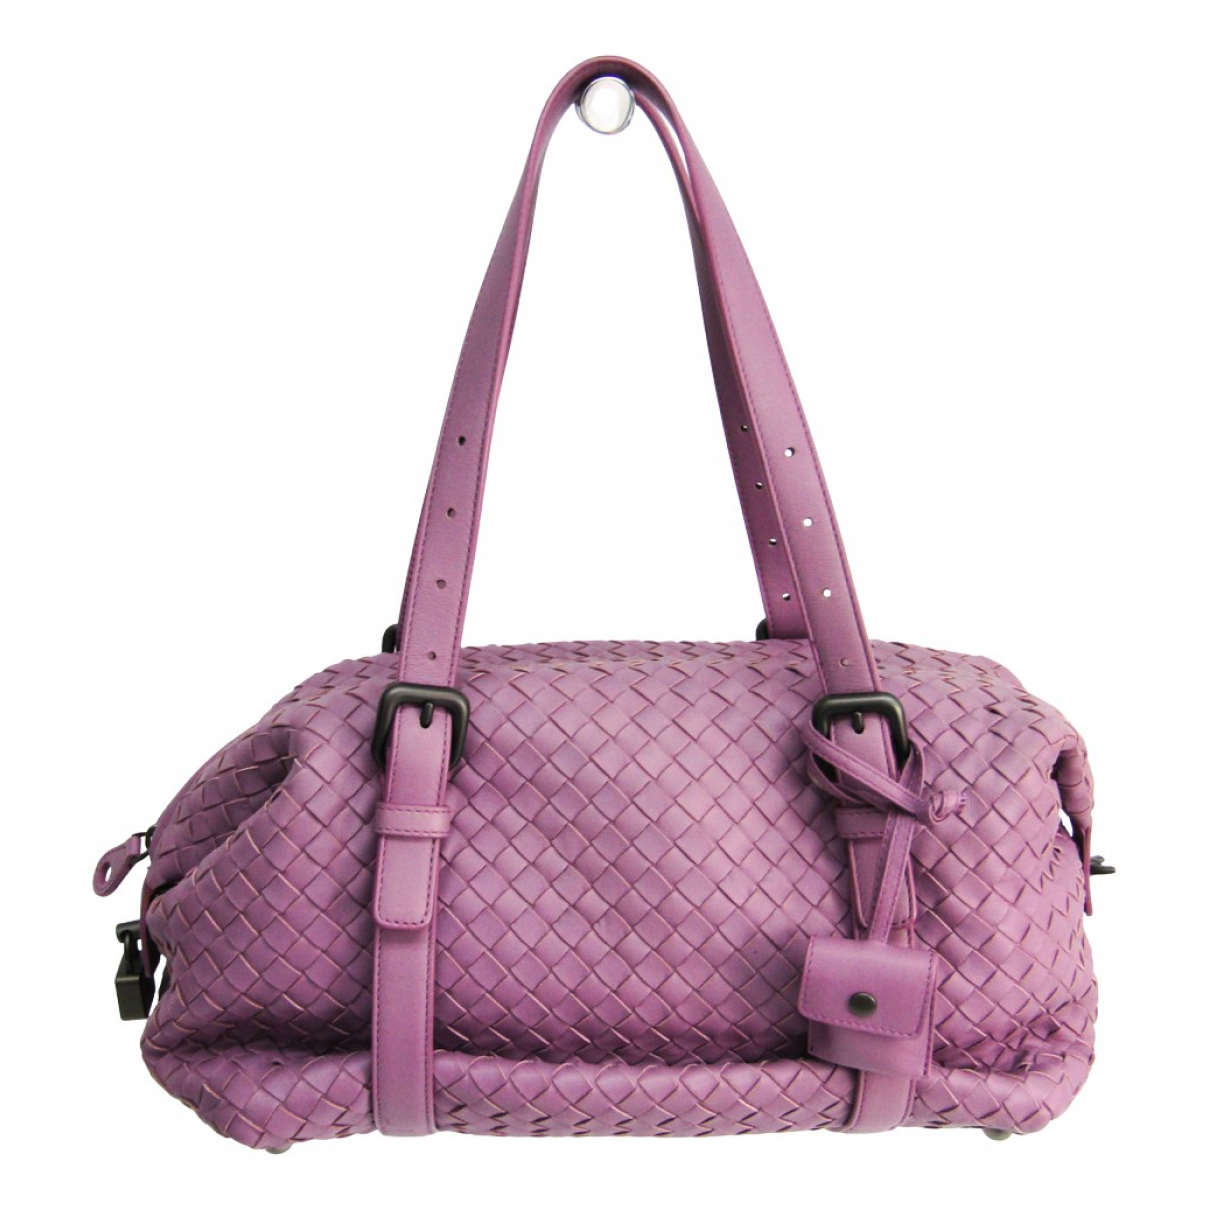 Bottega Veneta Veneta Purple Leather handbag for Women N